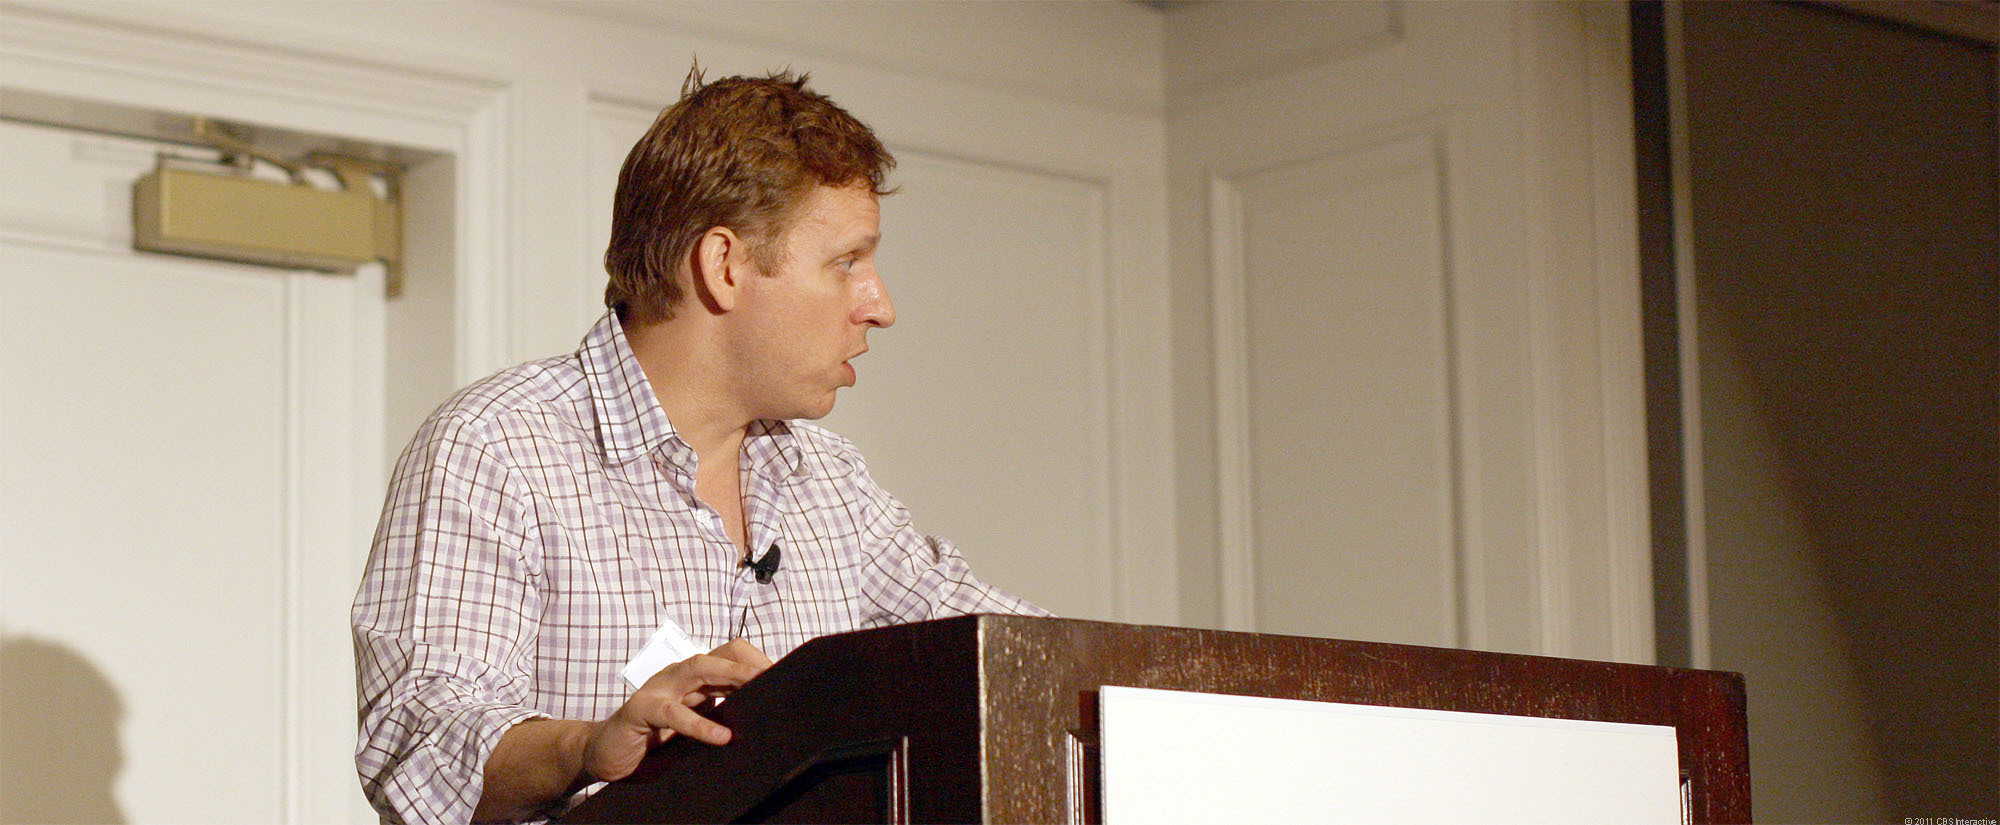 Peter Thiel says the United States no longer cares much about science or technology